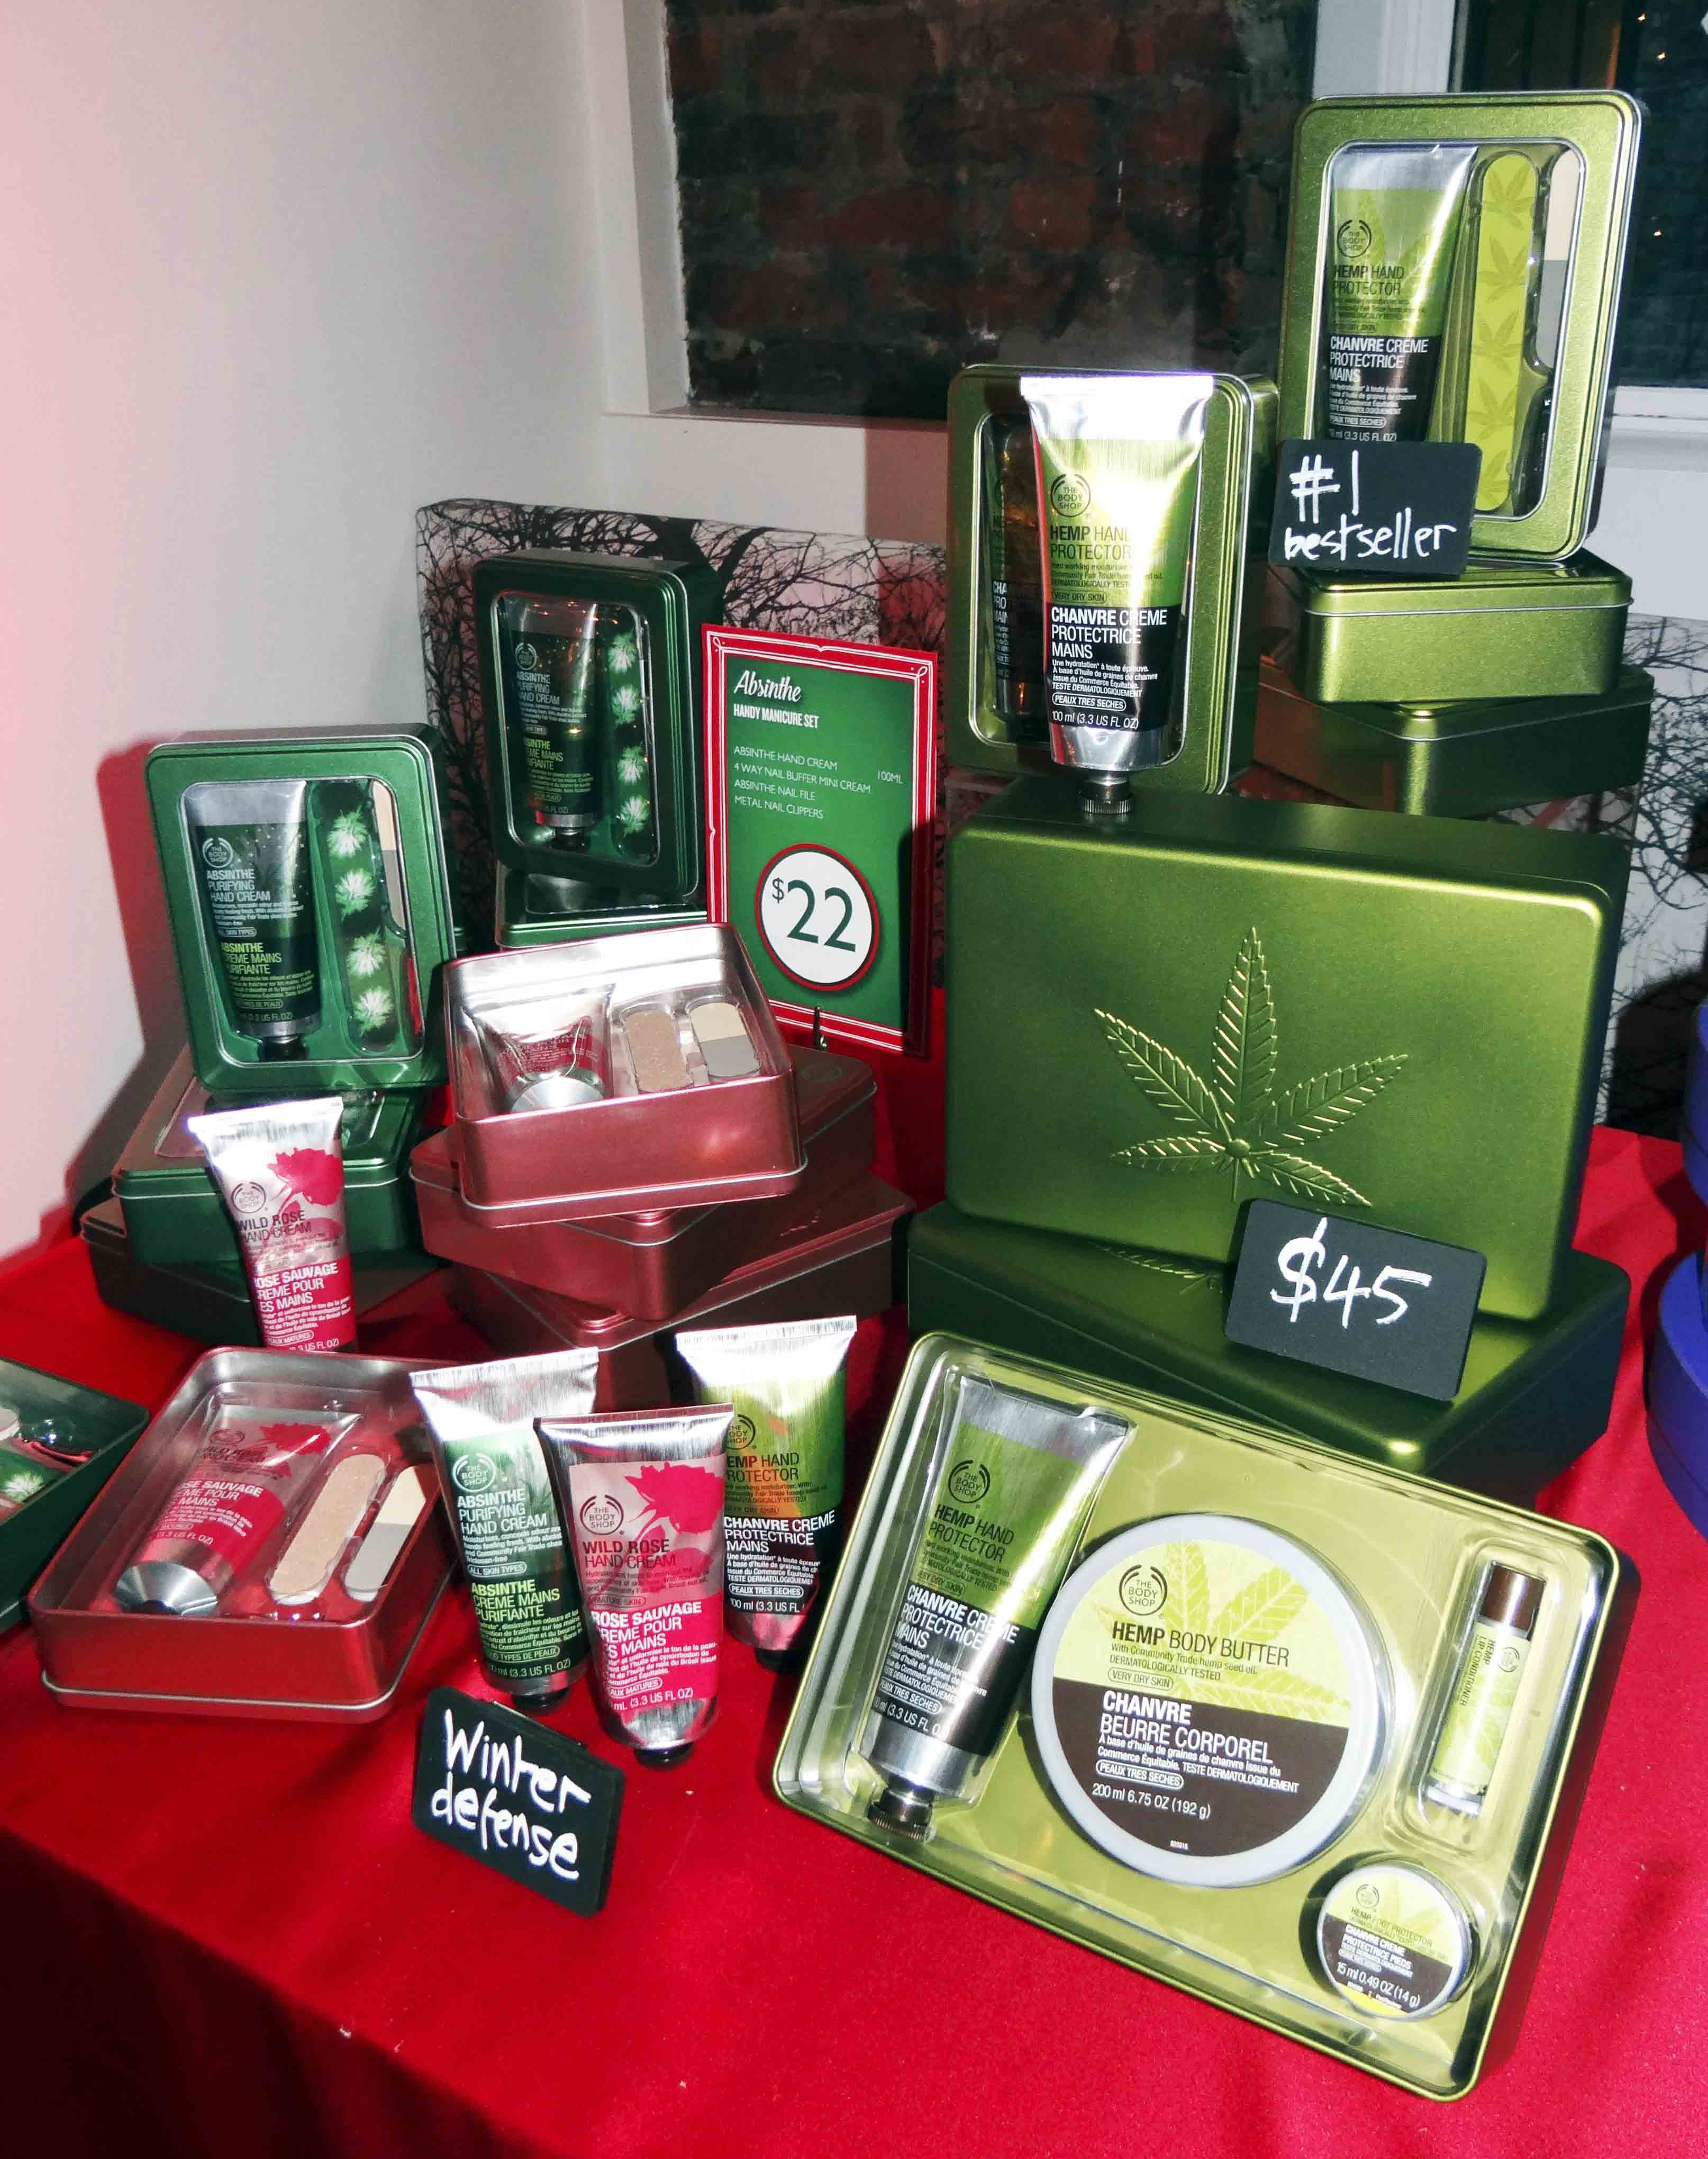 Holiday Gift Collection from The Body Shop - hautecanada.com - 14